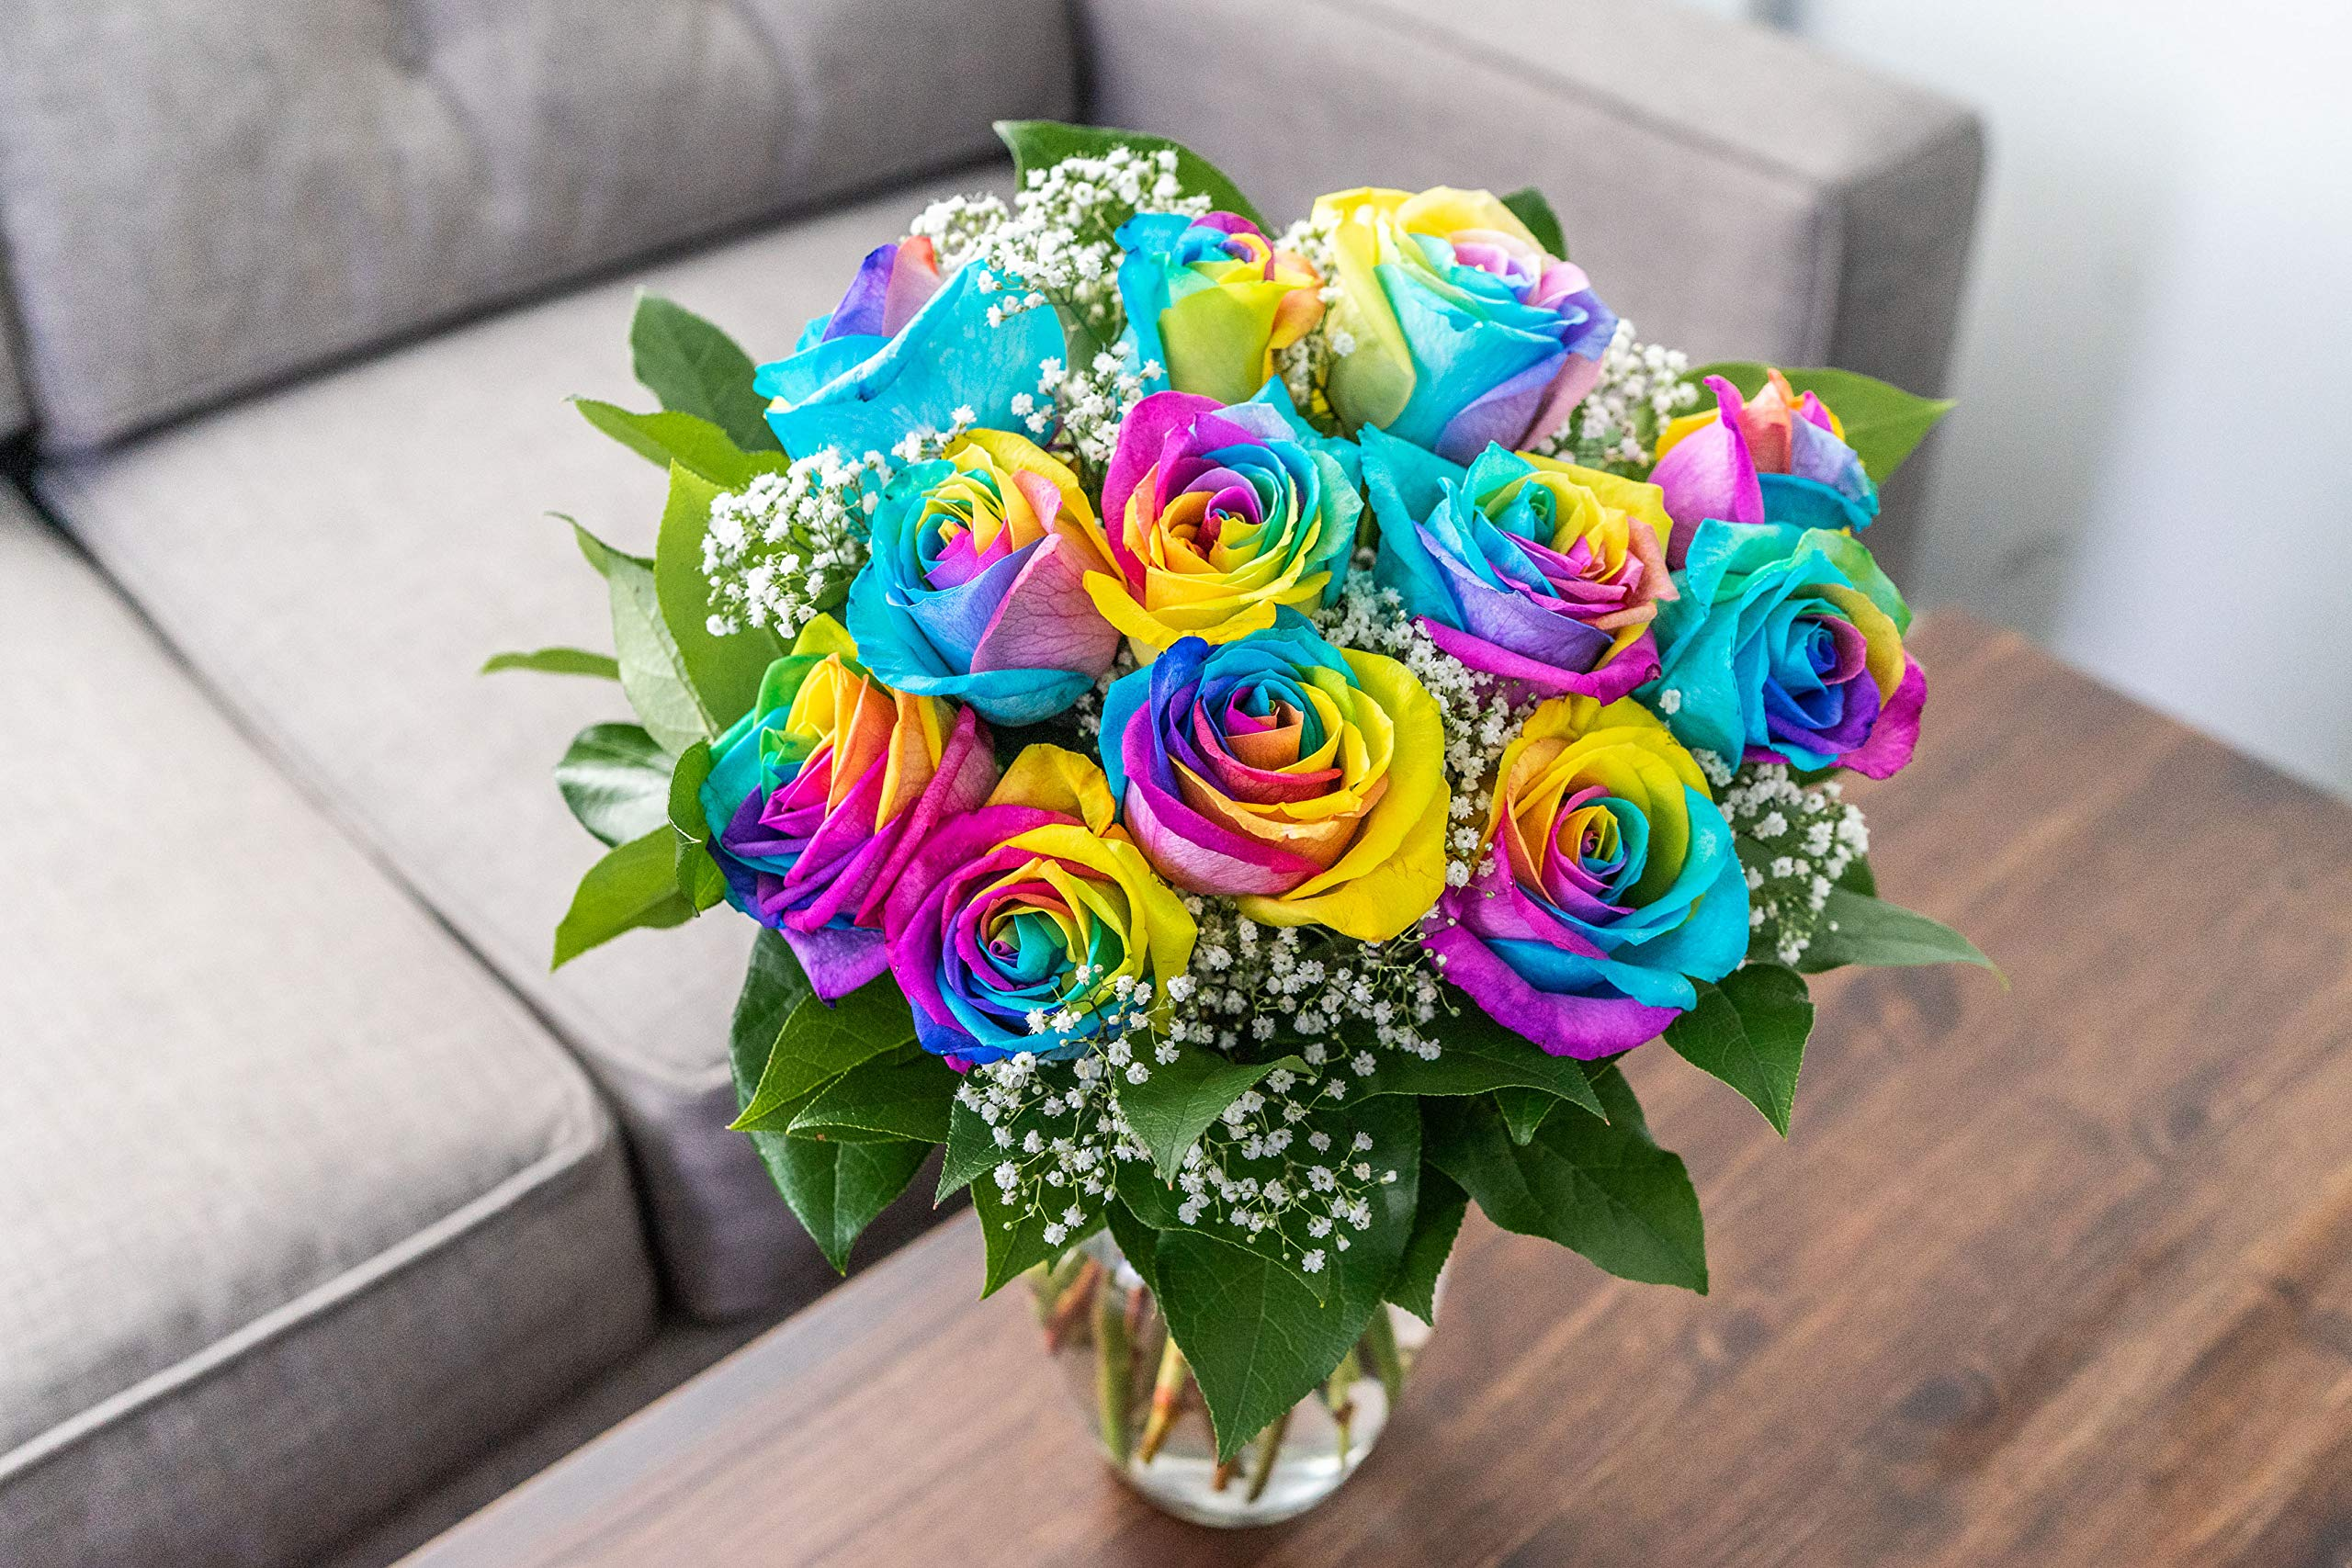 Flowers - One Dozen Wild Rainbow Roses (Free Vase Included) by From You Flowers